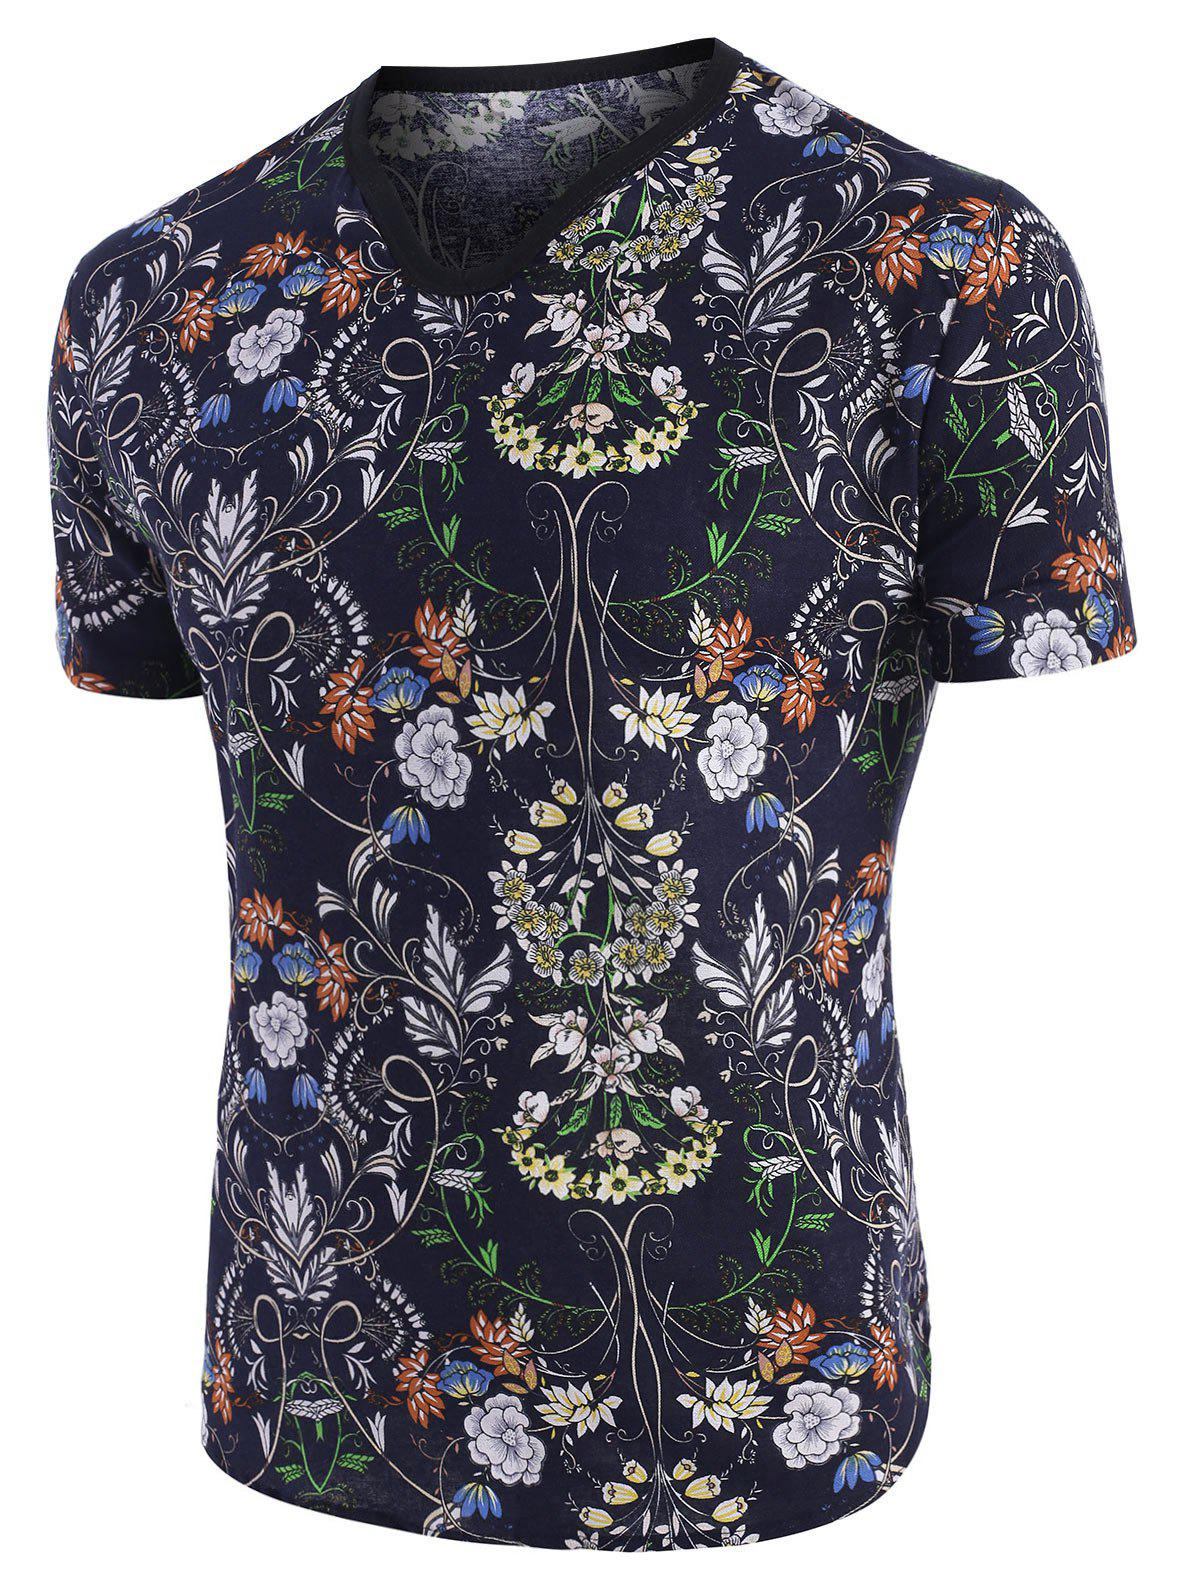 Latest Floral Print Ethnic V Neck Short Sleeve T Shirt